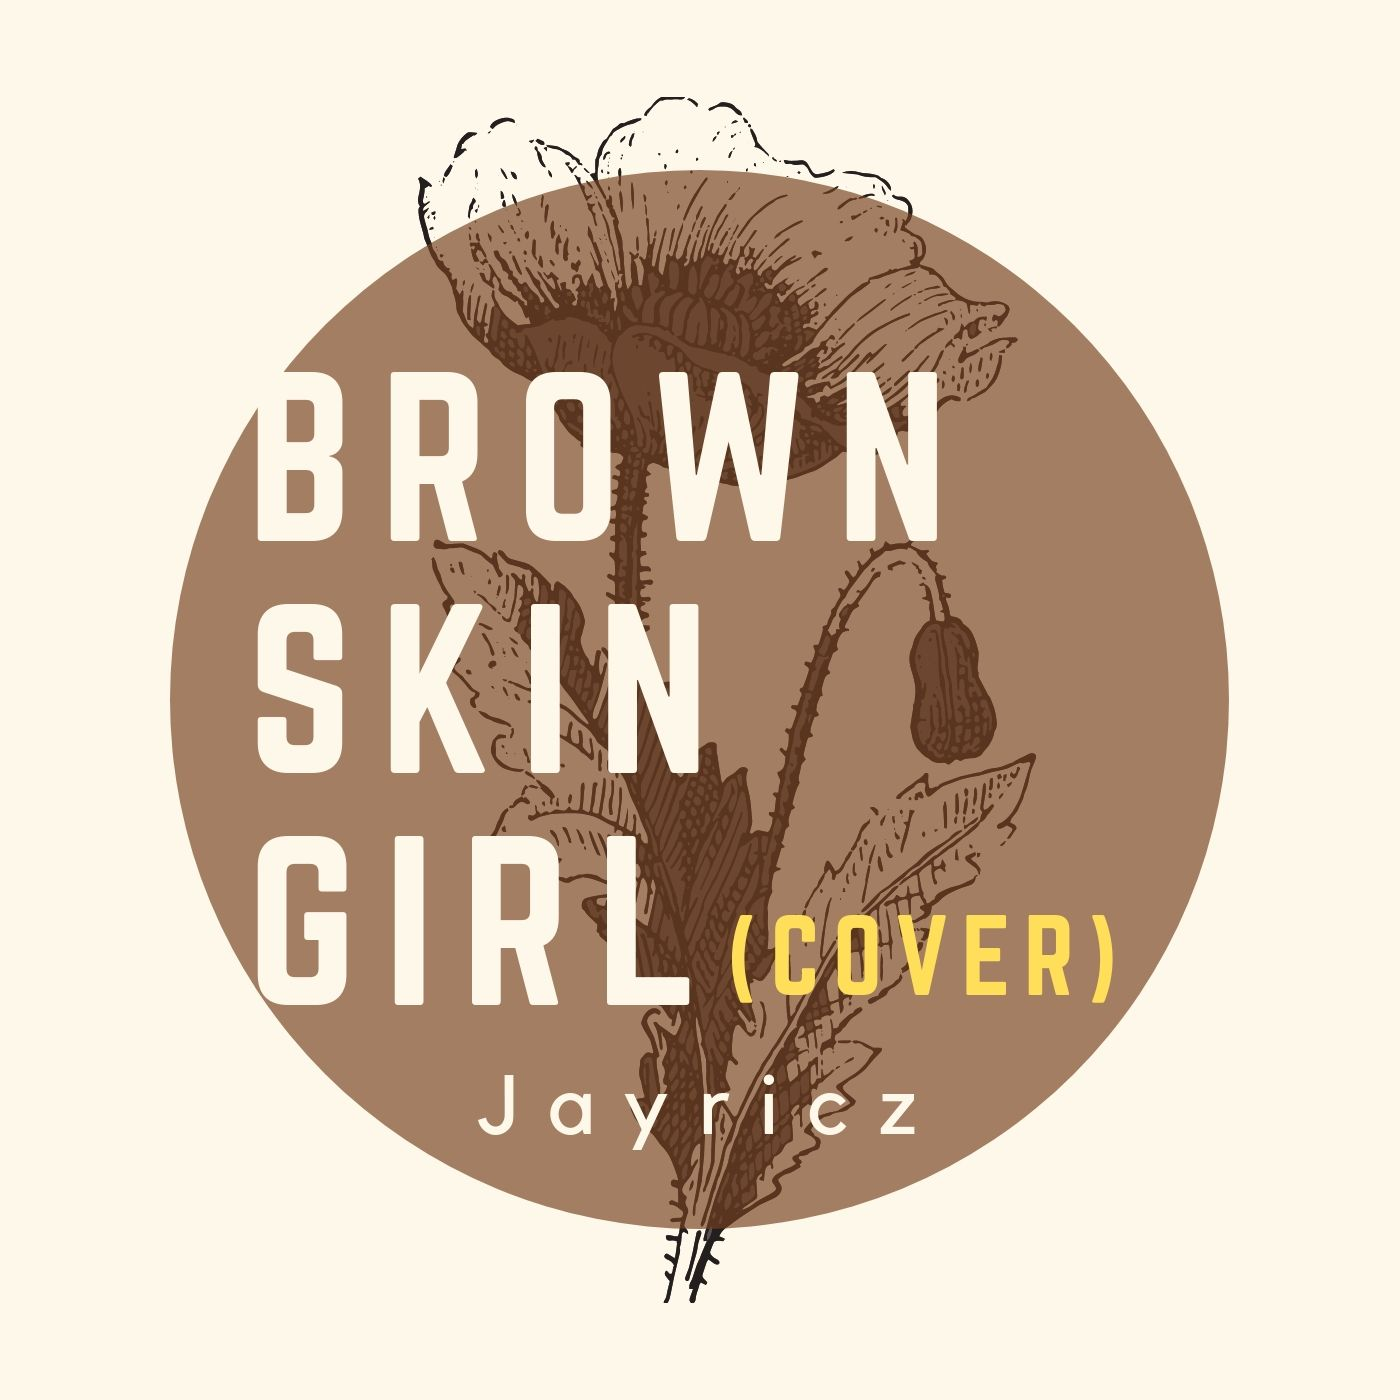 brown skin girl - Jayricz Brown Skin Girl Cover